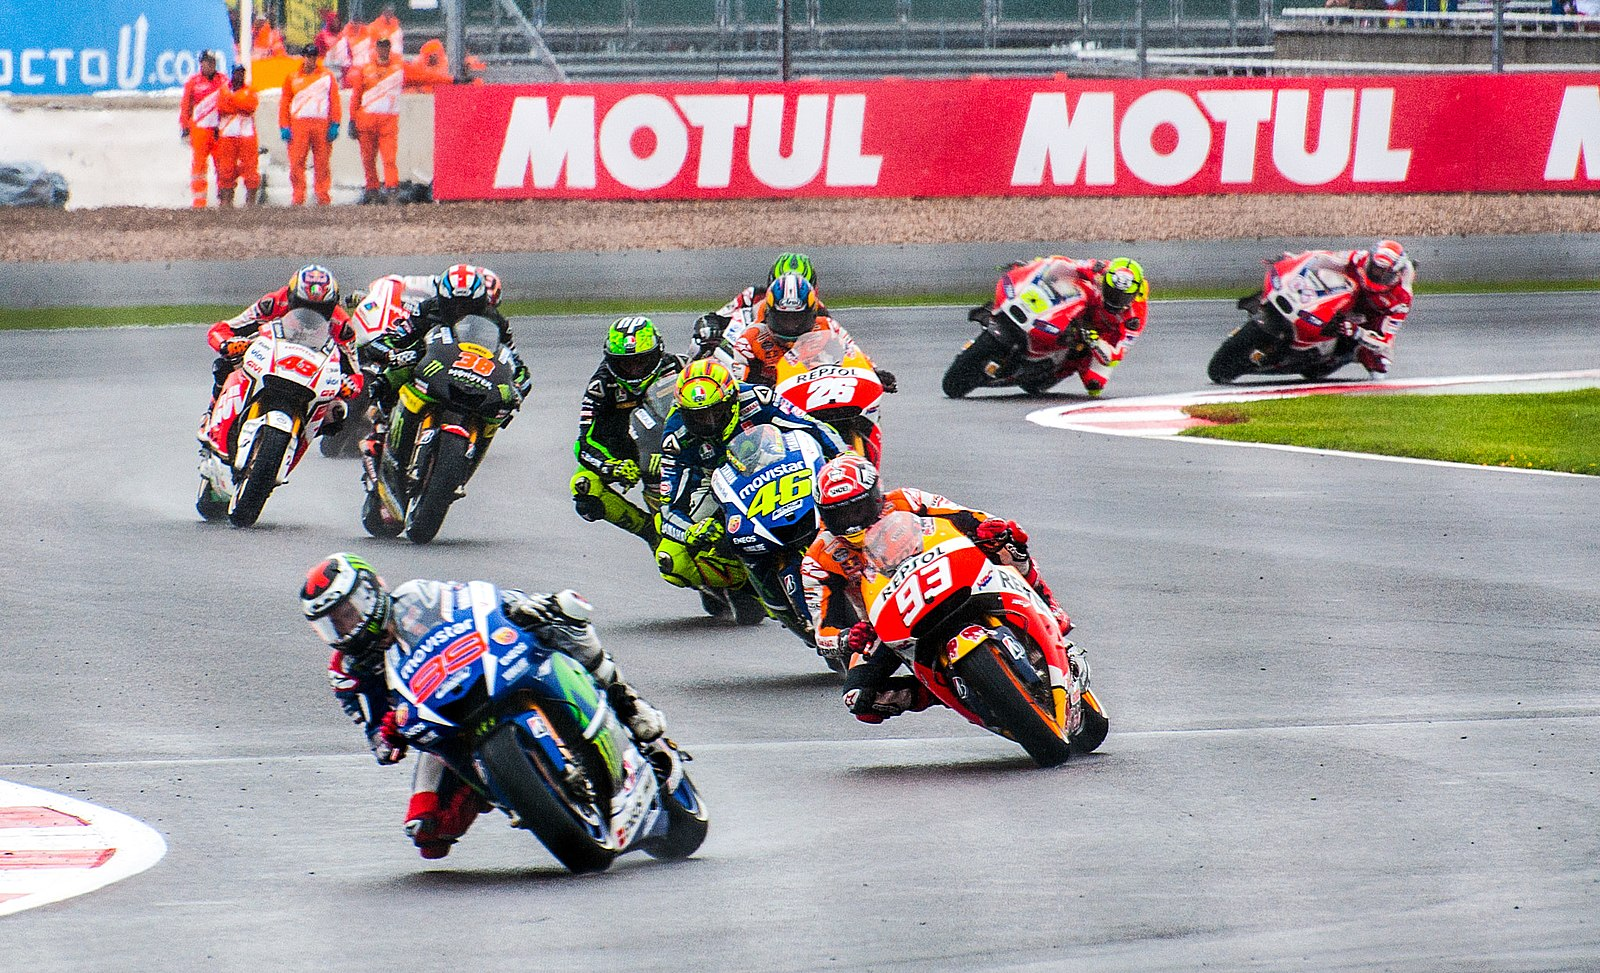 Police aim to reduce motorcycle road trauma during MotoGP.